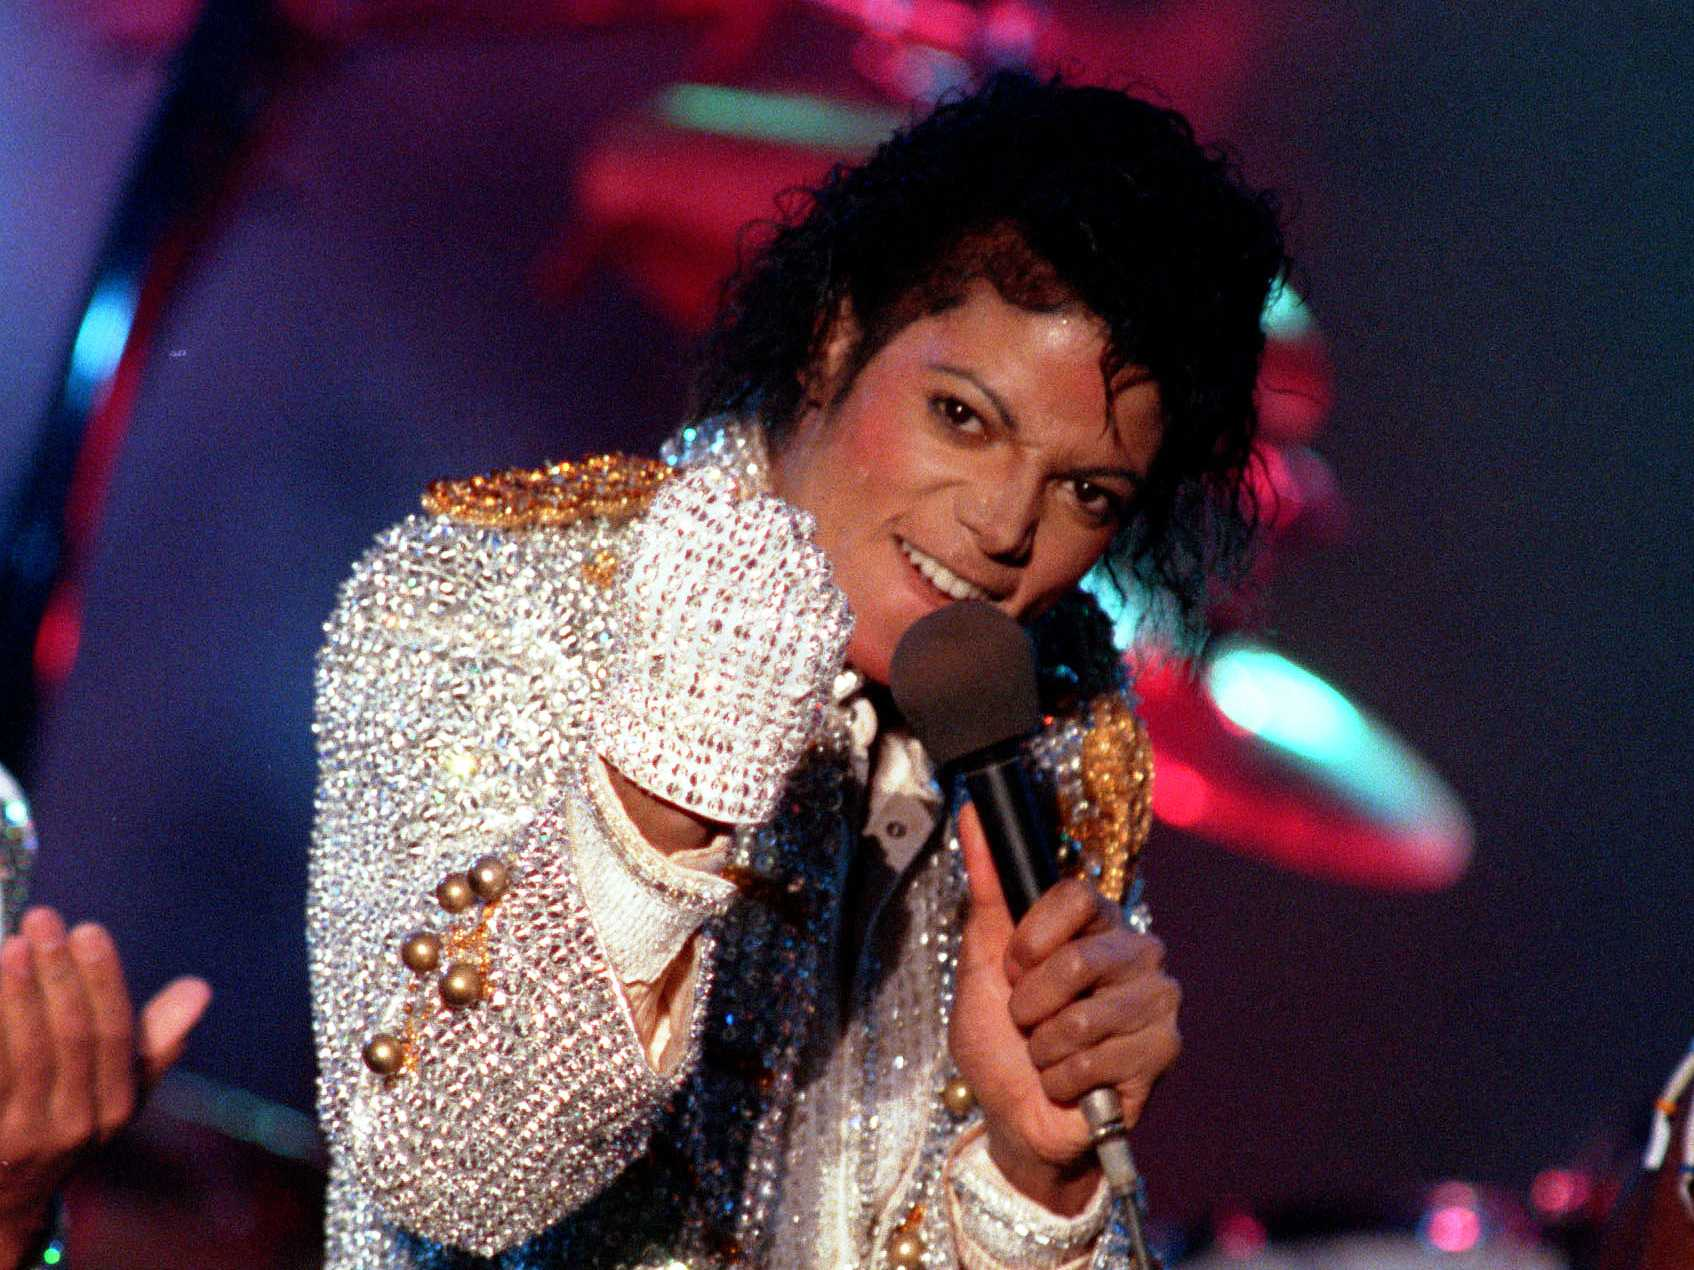 Michael Jackson Wax Statue Removed by Danish Mall